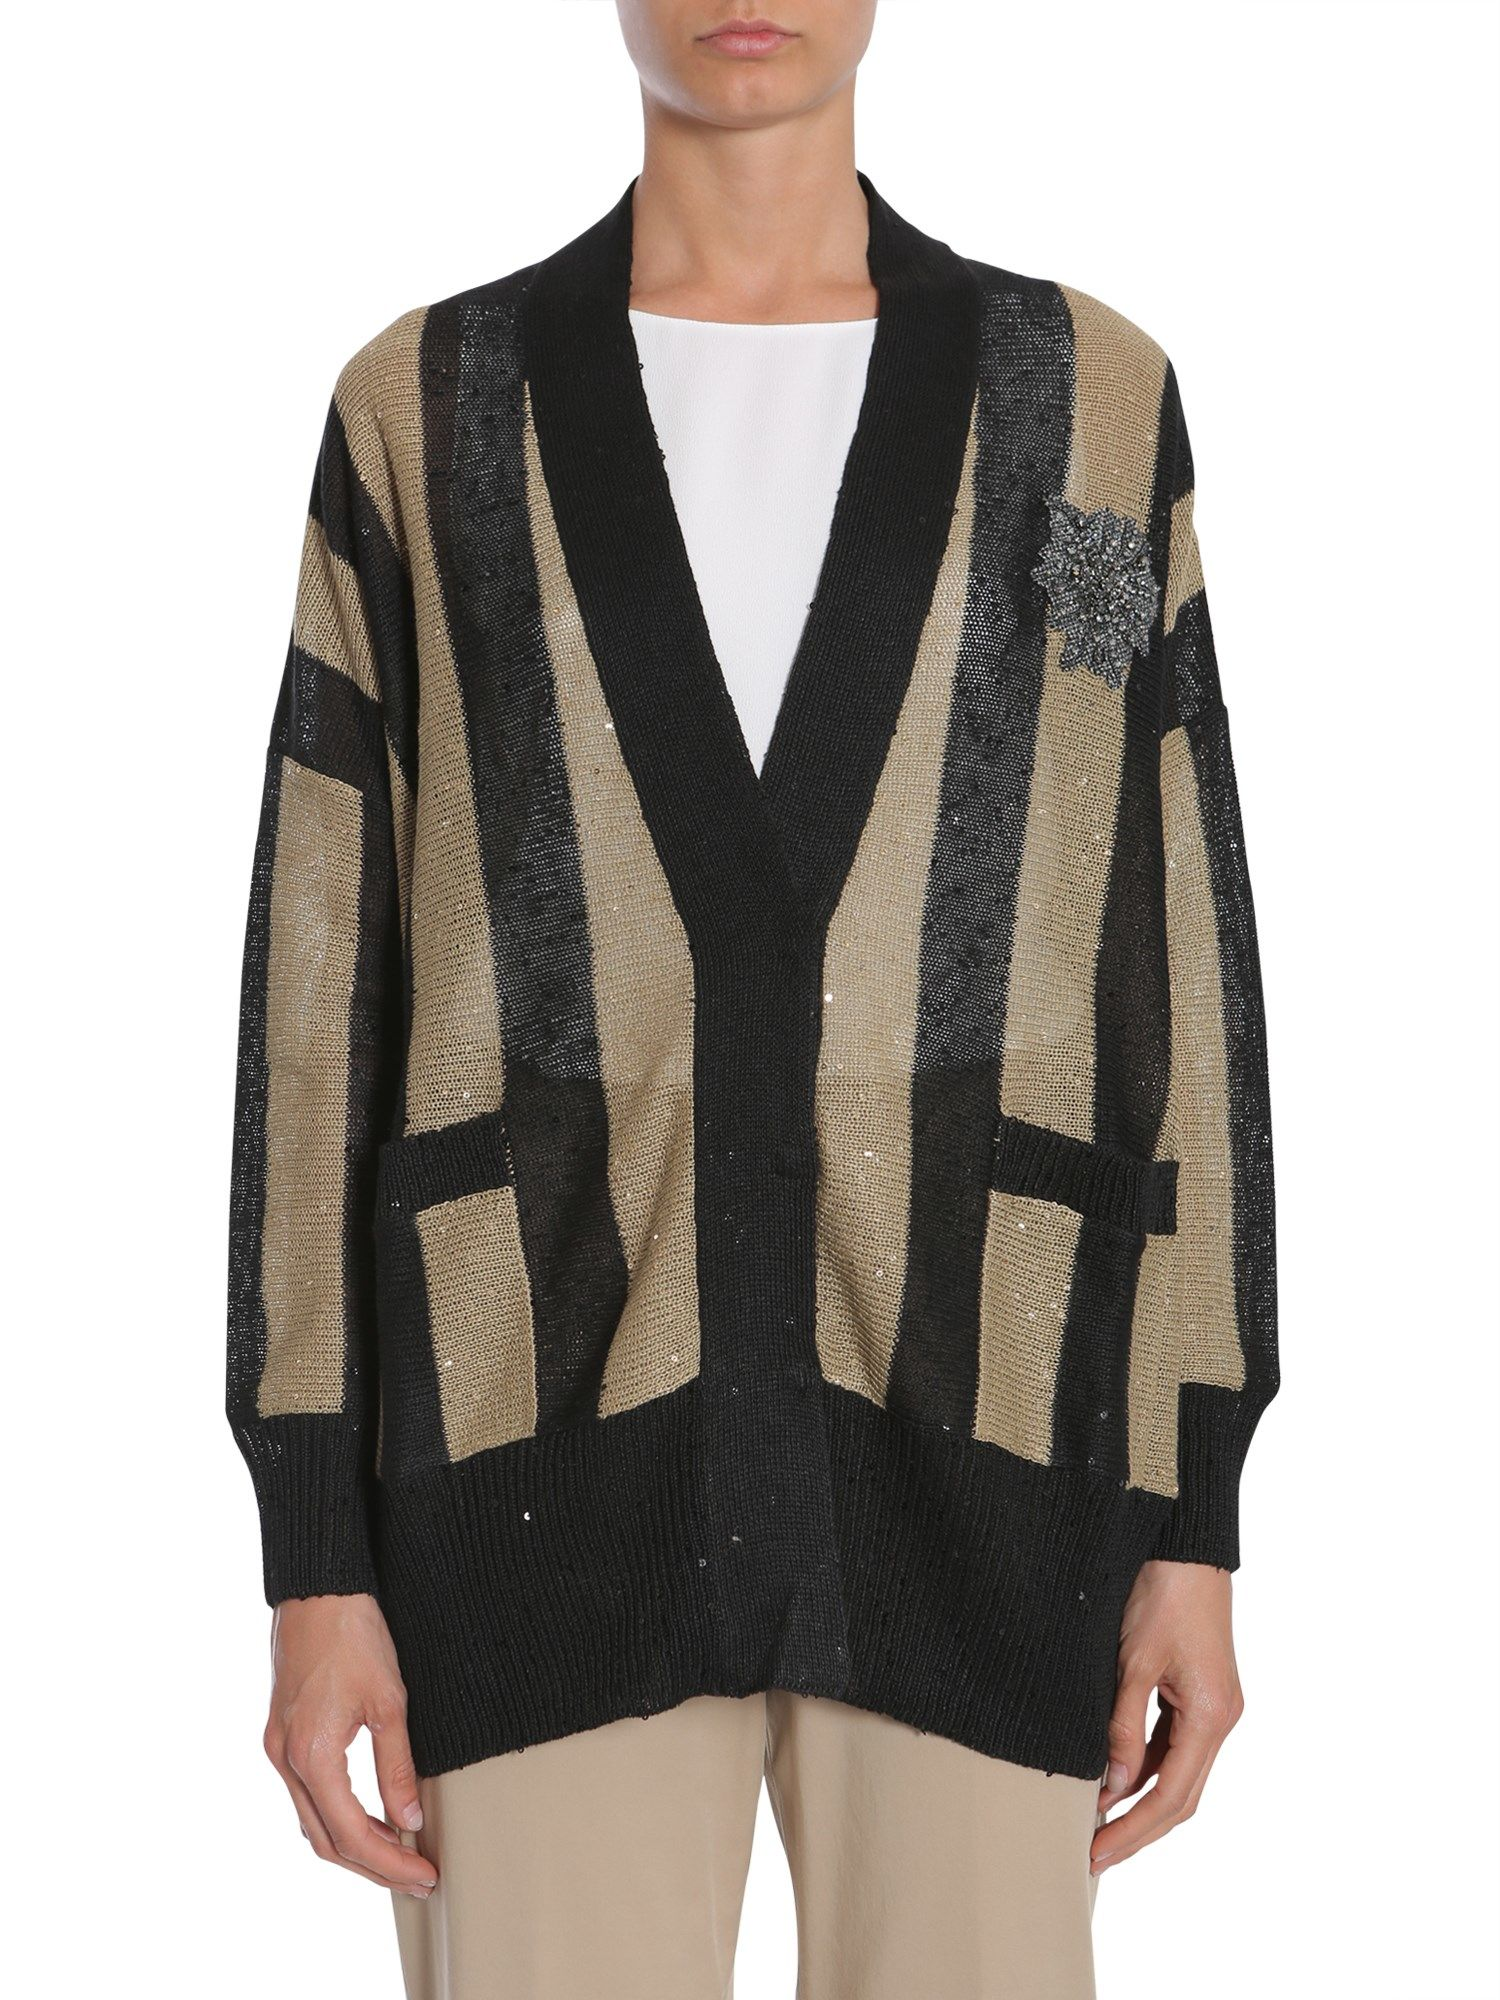 Cricket Stripes Cardigan